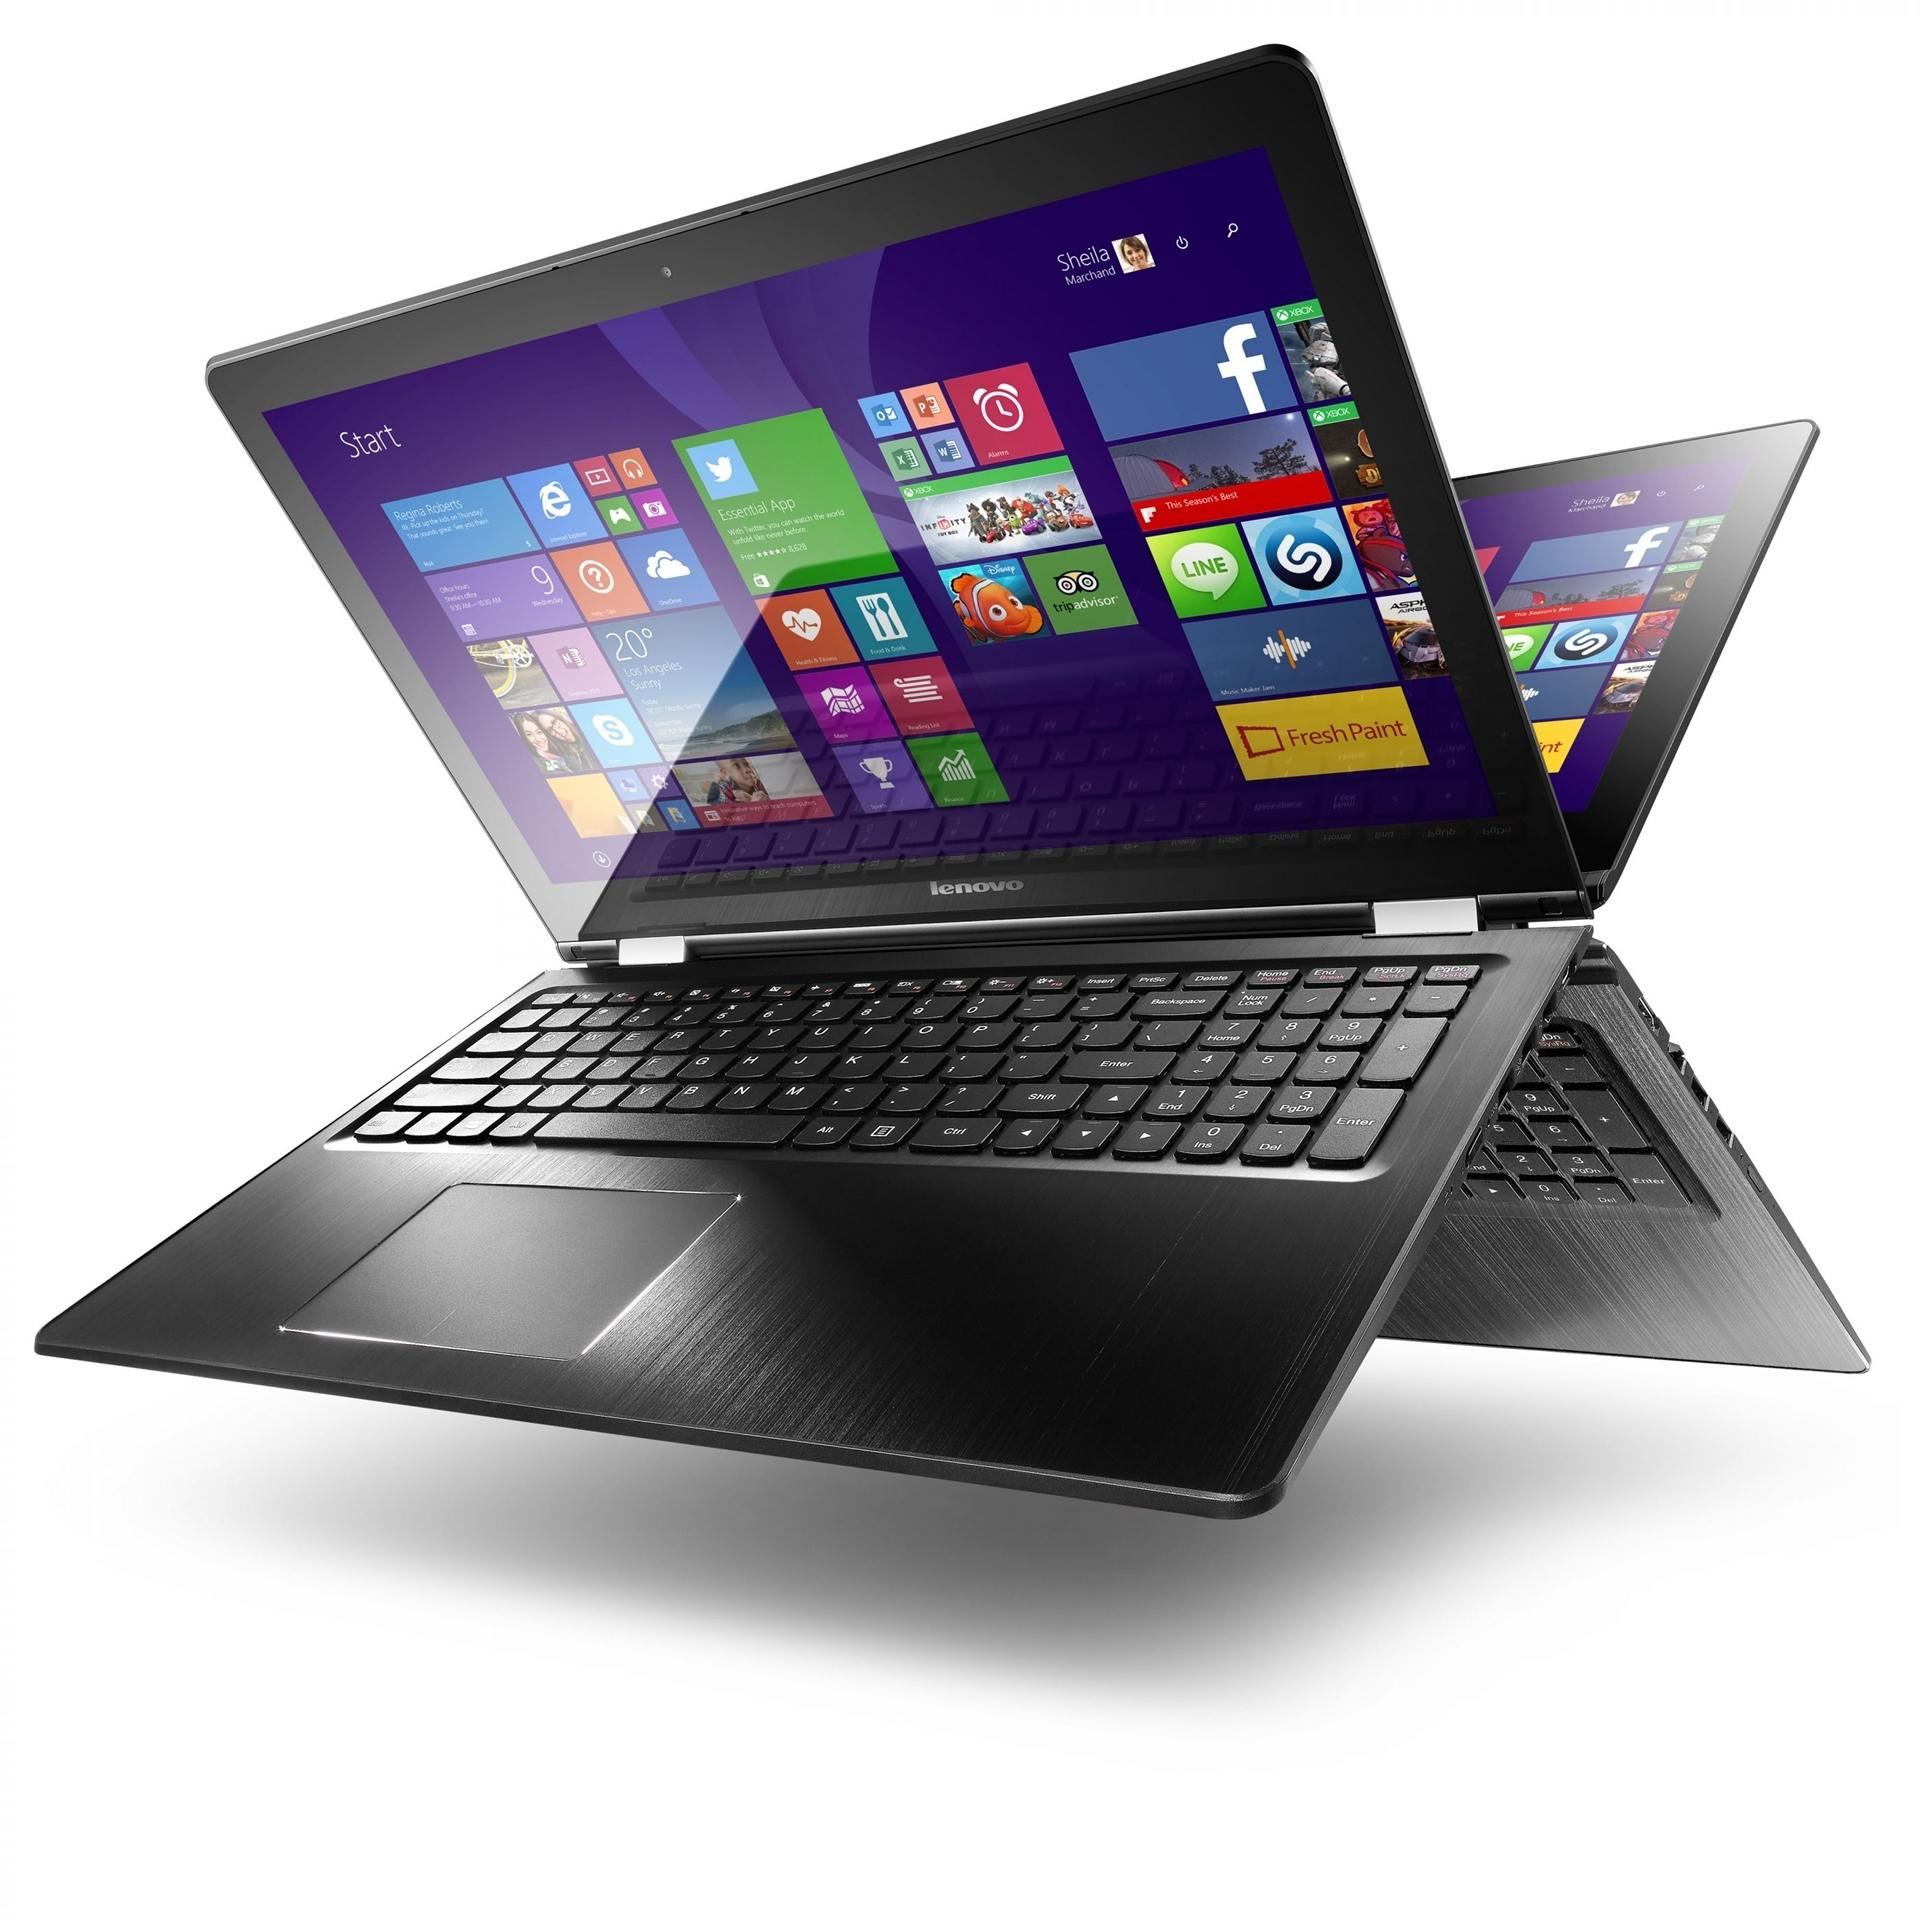 Lenovo IdeaPad Yoga [фотообзор]